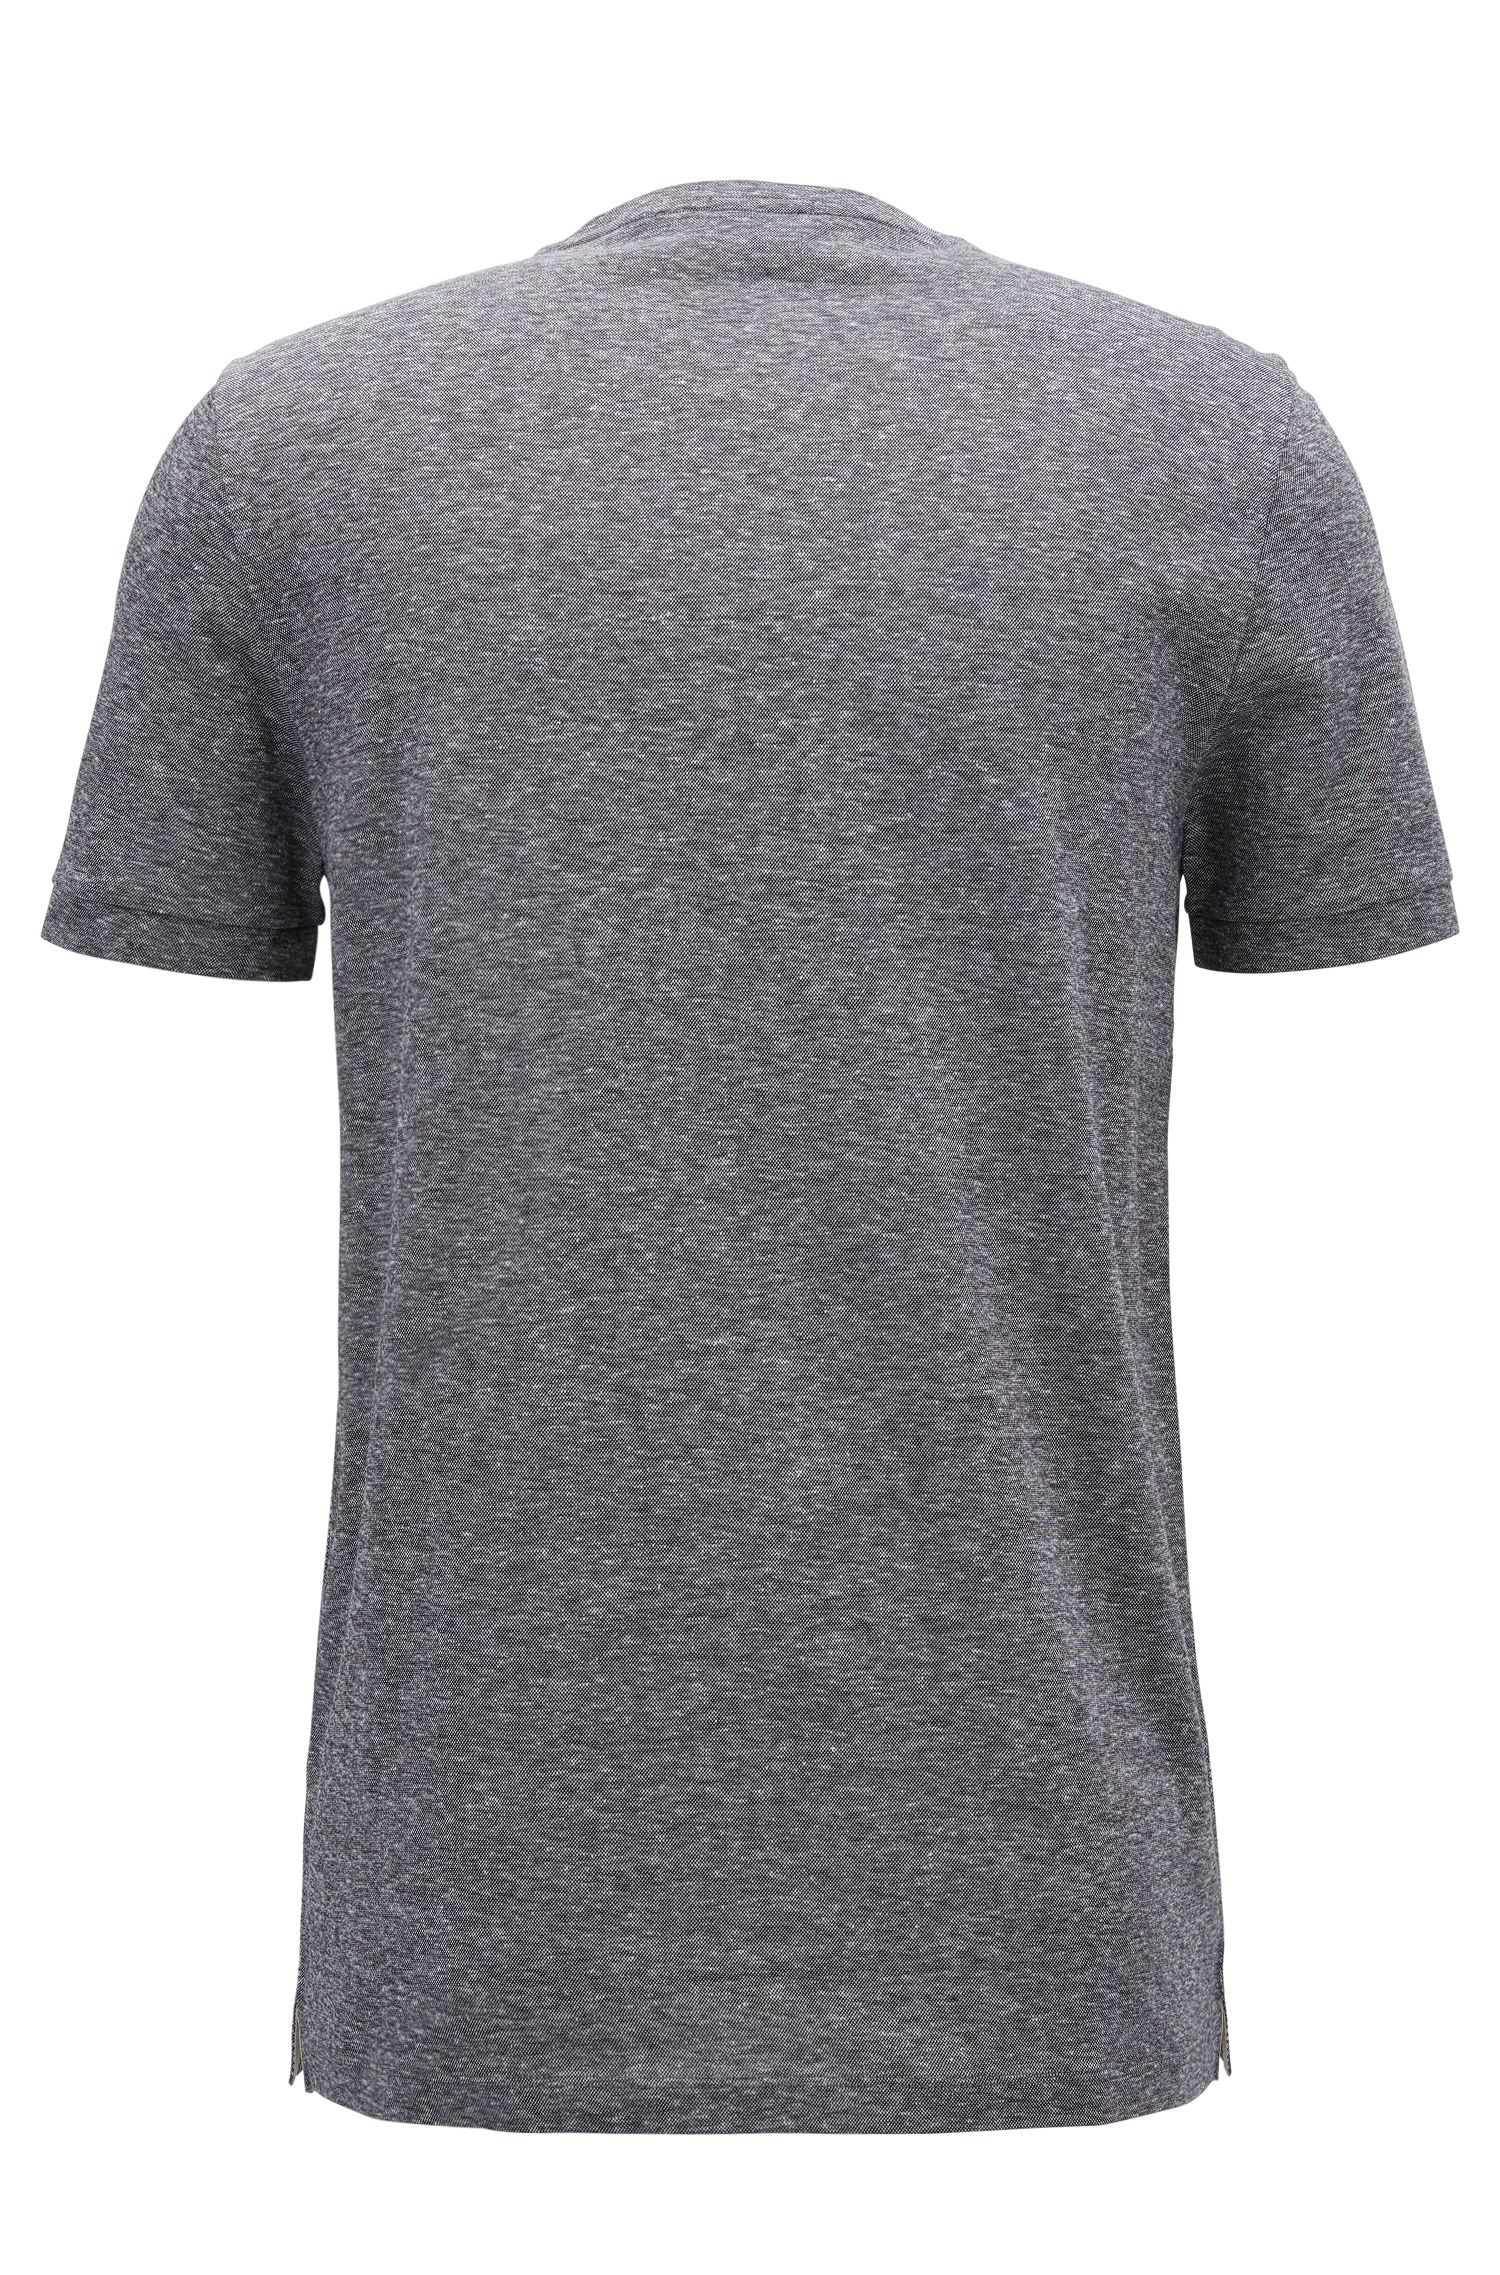 Cotton Linen T-Shirt | Tessler, Black